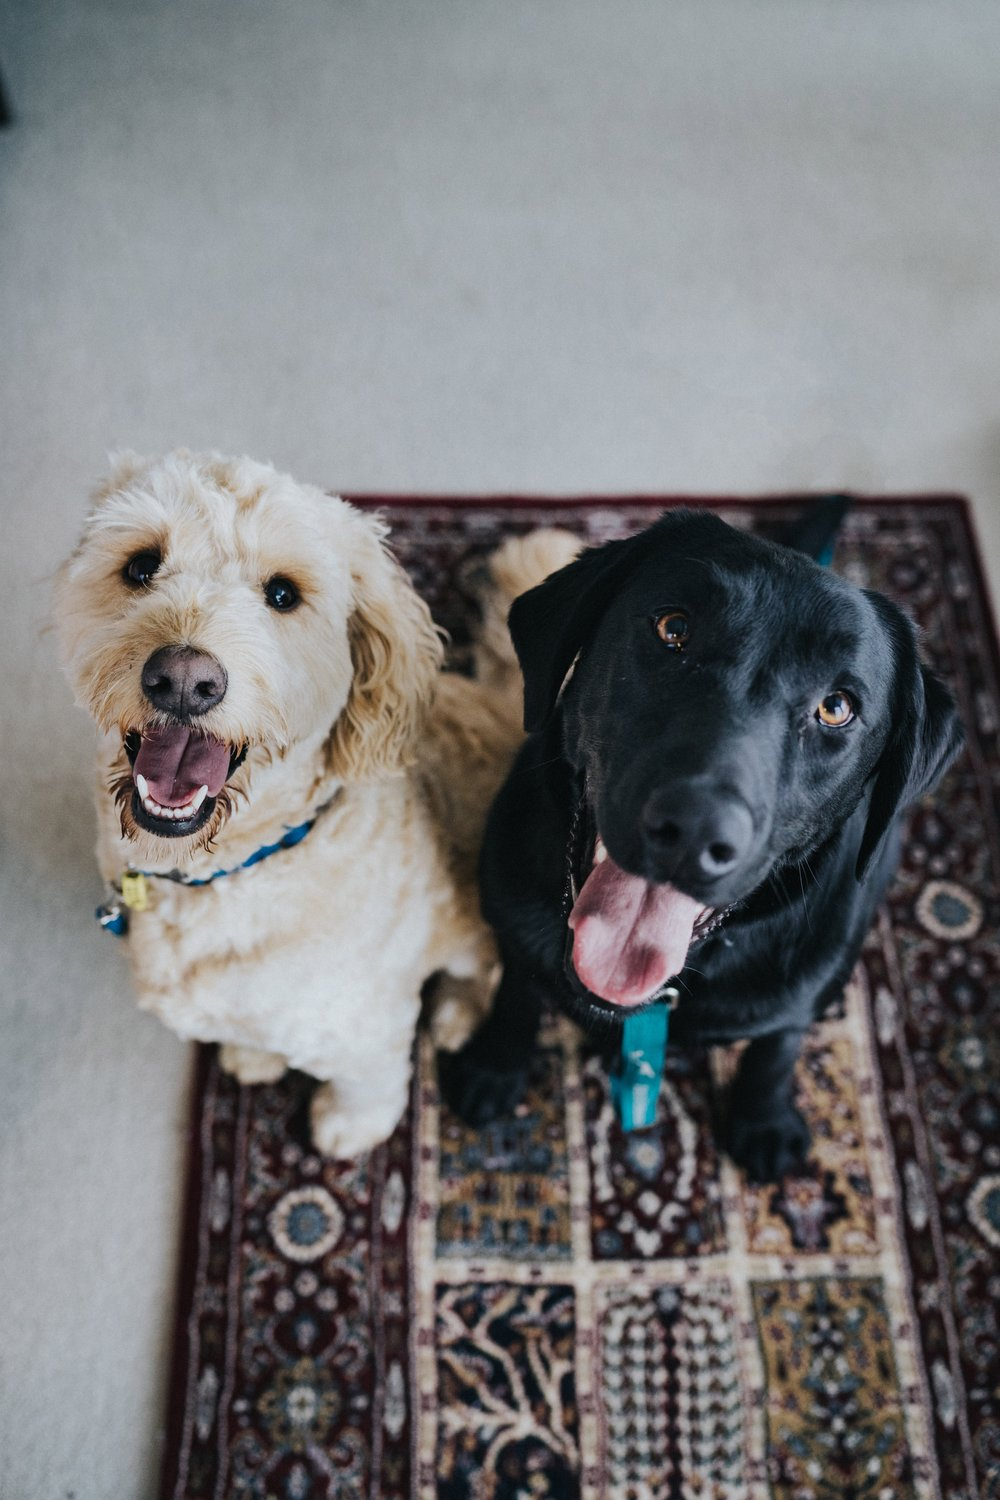 Is it true puppy love, or did they just see the treats come out?